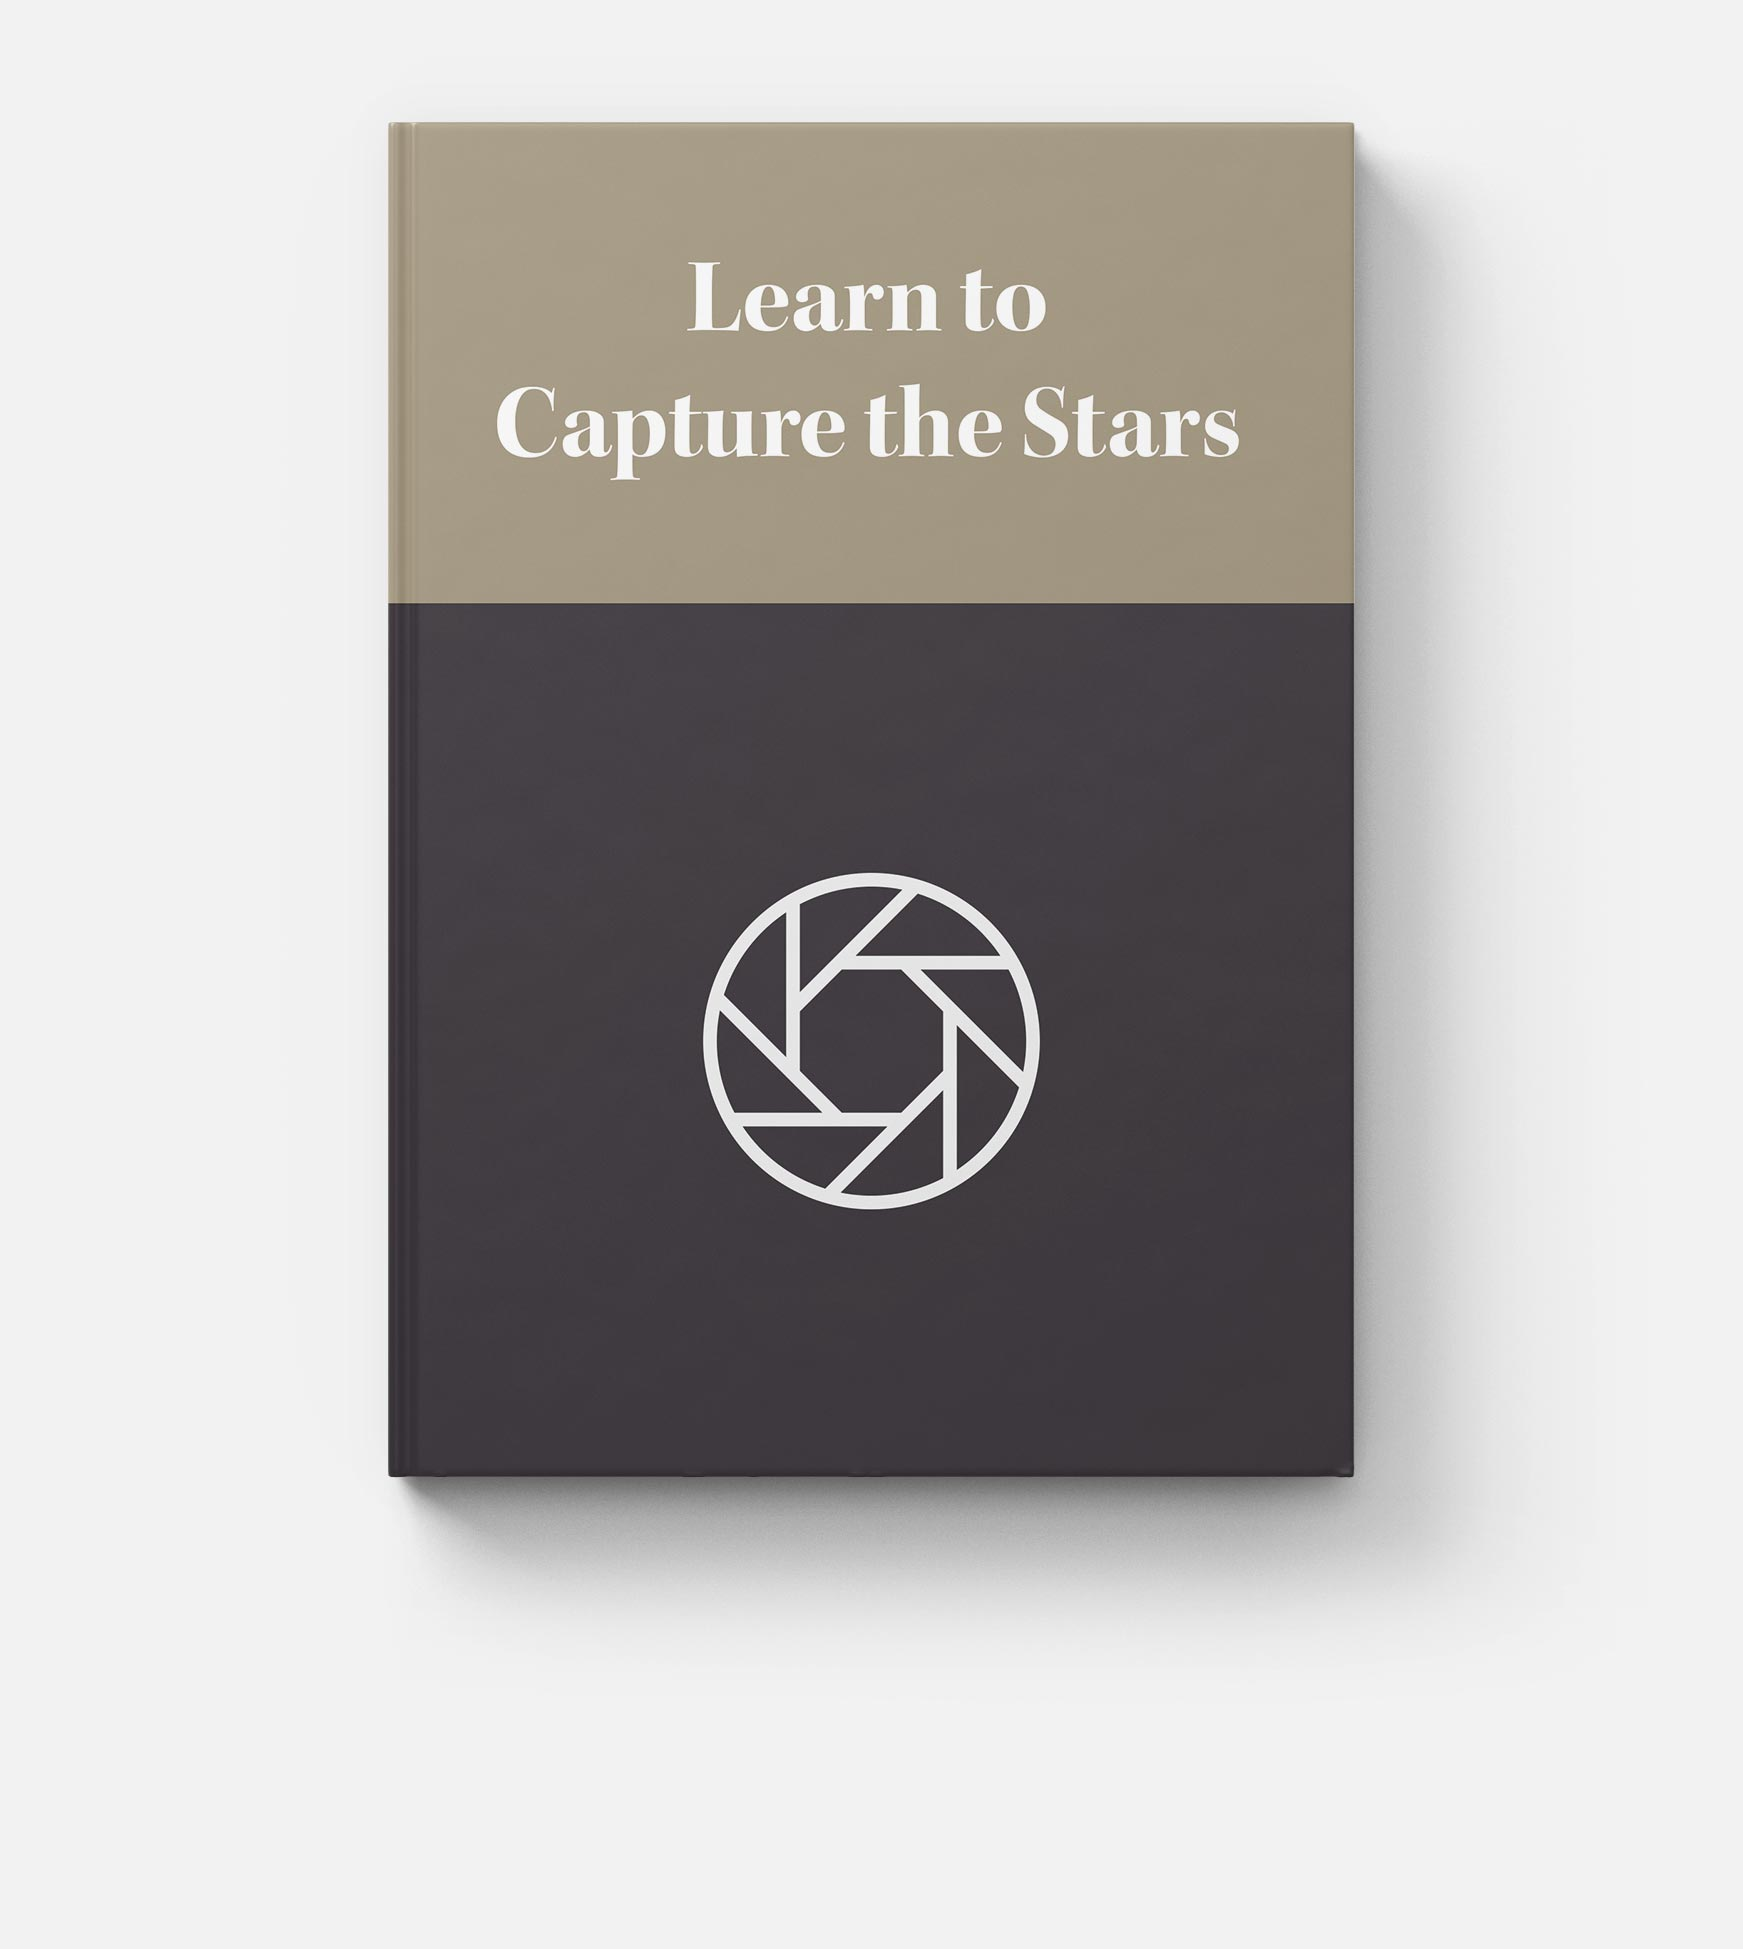 Learn to Capture the Stars book